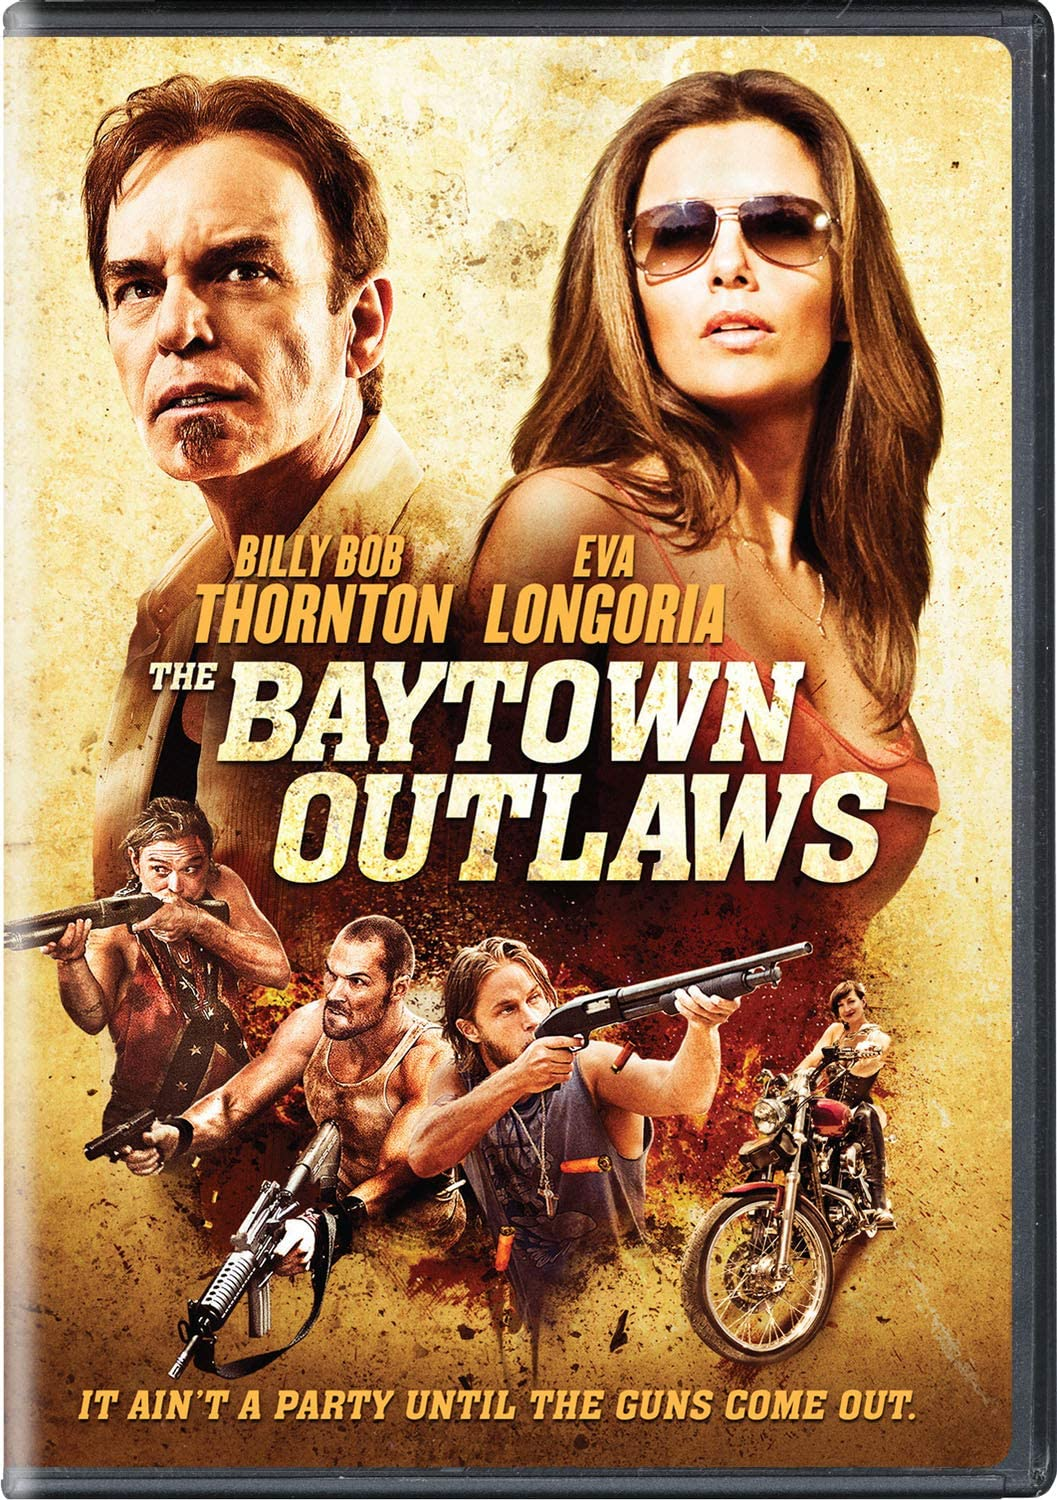 OUTLAWS TÉLÉCHARGER BAYTOWN